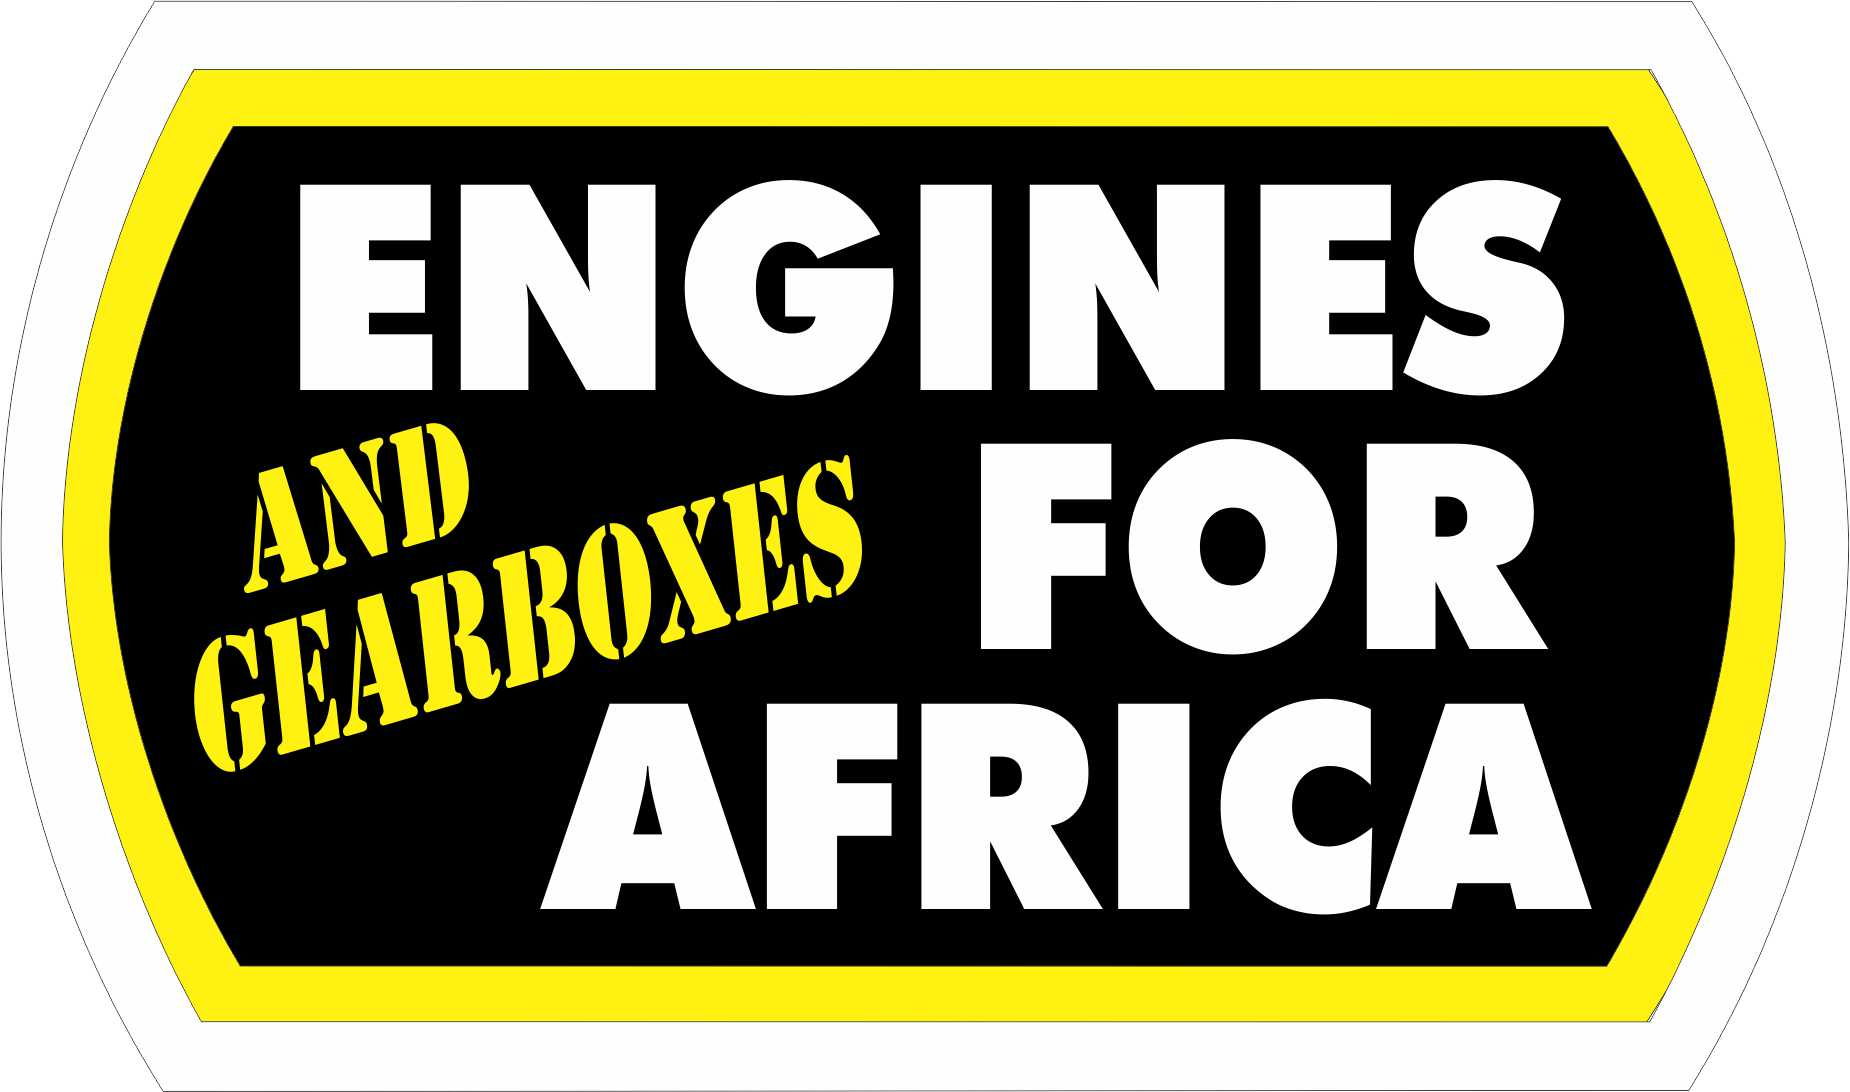 Engines for Africa